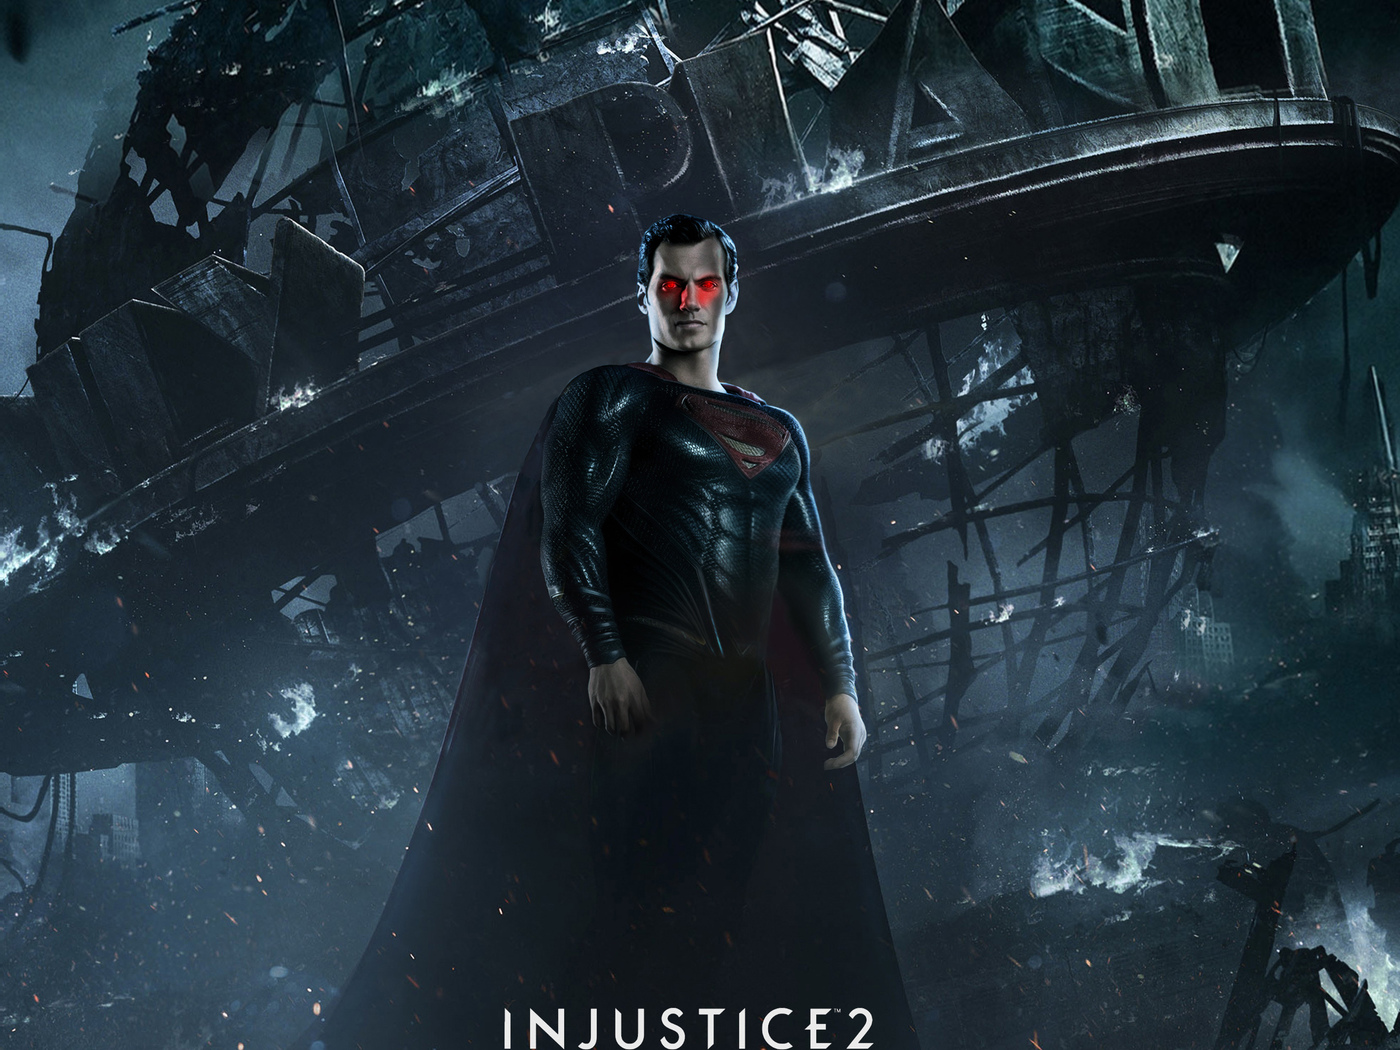 injustice-2-superman-image.jpg